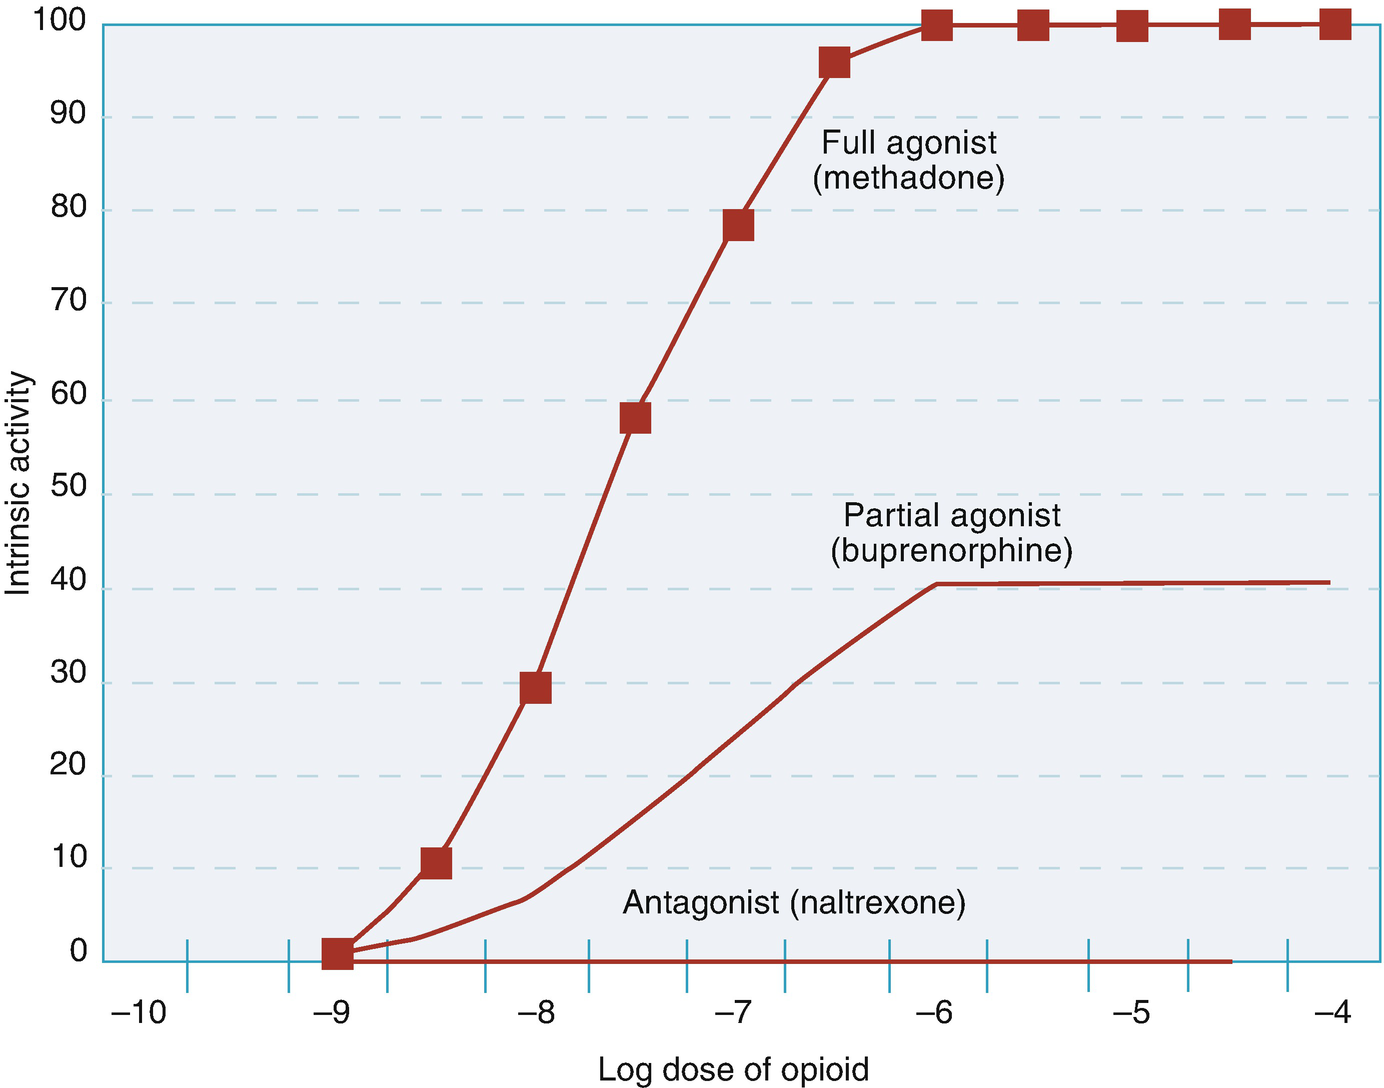 Medication for the Treatment of Opioid Use Disorder | SpringerLink